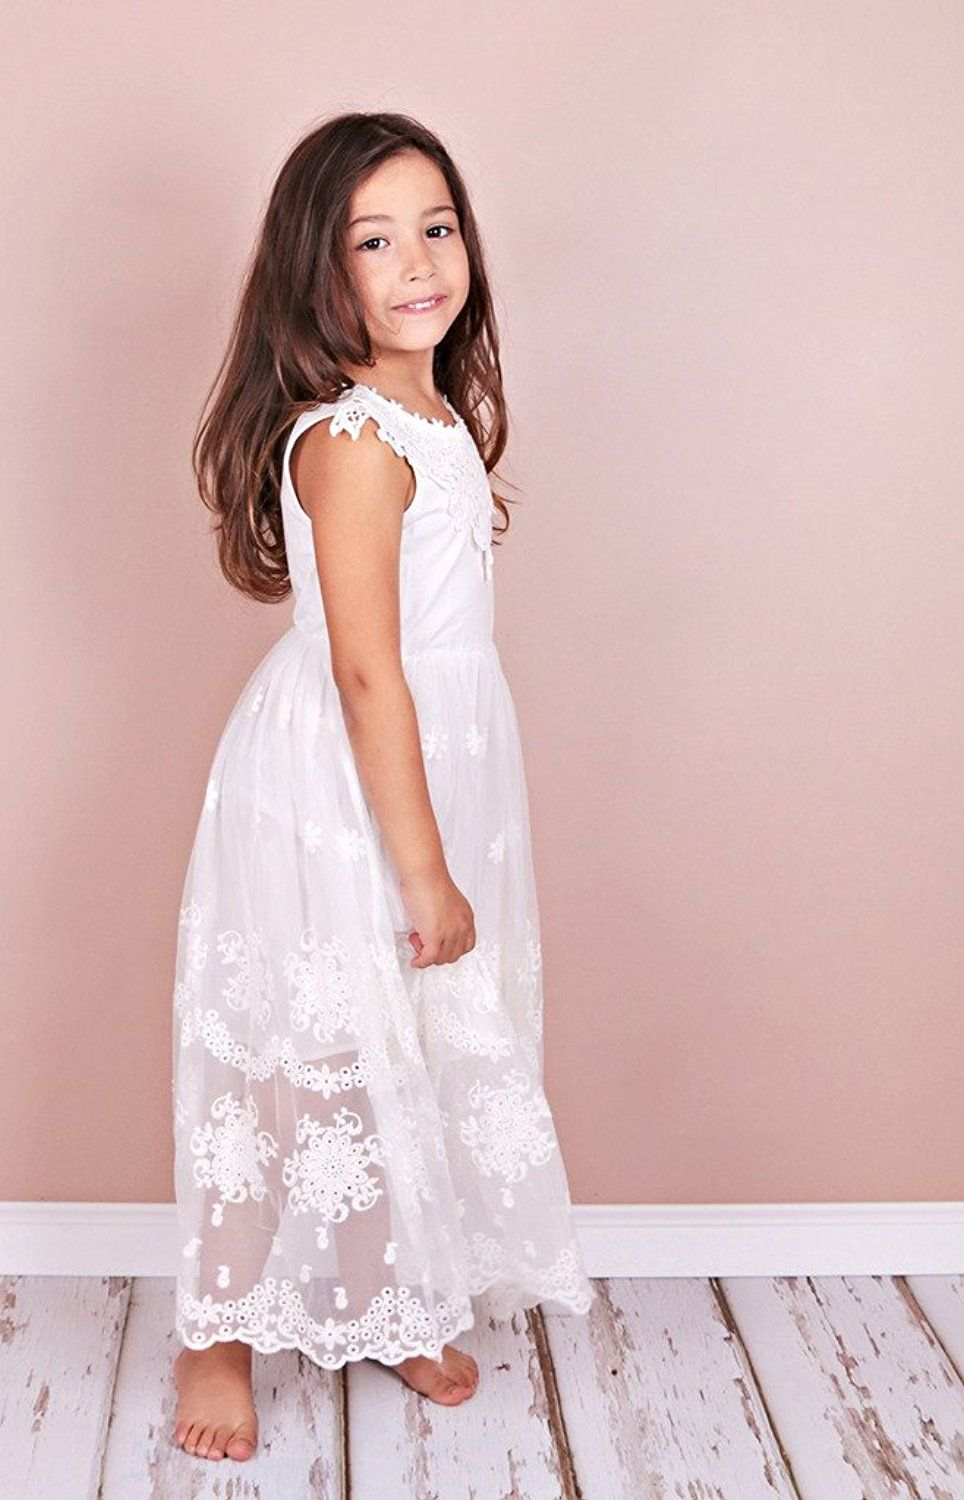 Amazon.com: Bow Dream Flower Girl\'s Dress Vintage Lace: Clothing ...